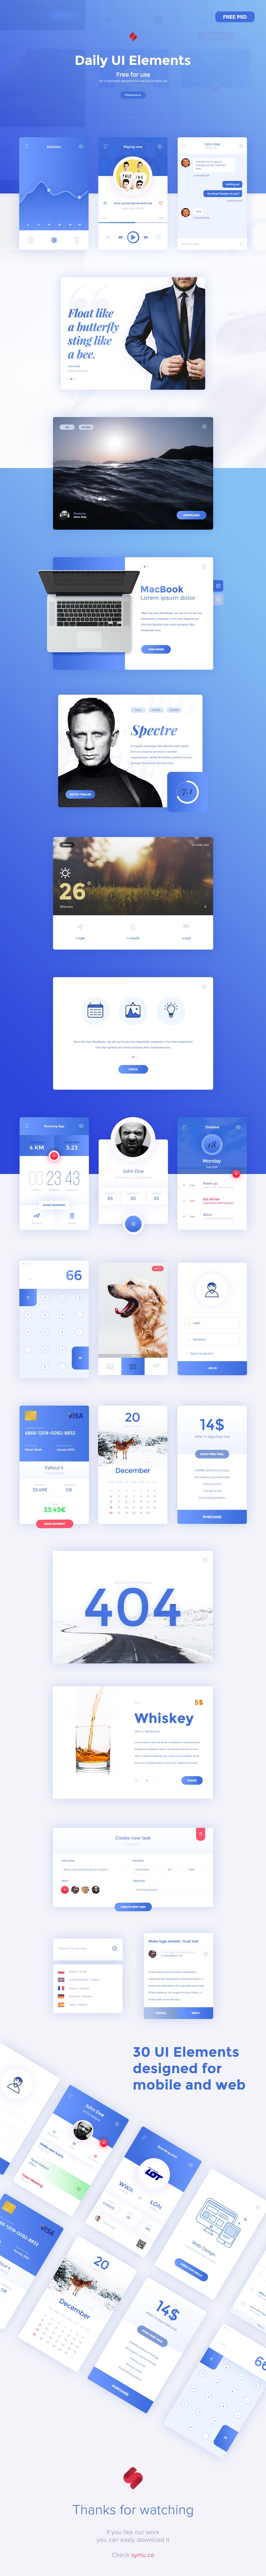 Winter has come... so we have new freebies for you. After 30 of challenge we have 30 UI elements waiting to download for free. These PSD templates are perfect for your future design, apps. Great stuff to start your new project.DOWNLOAD: https://symu.co/…